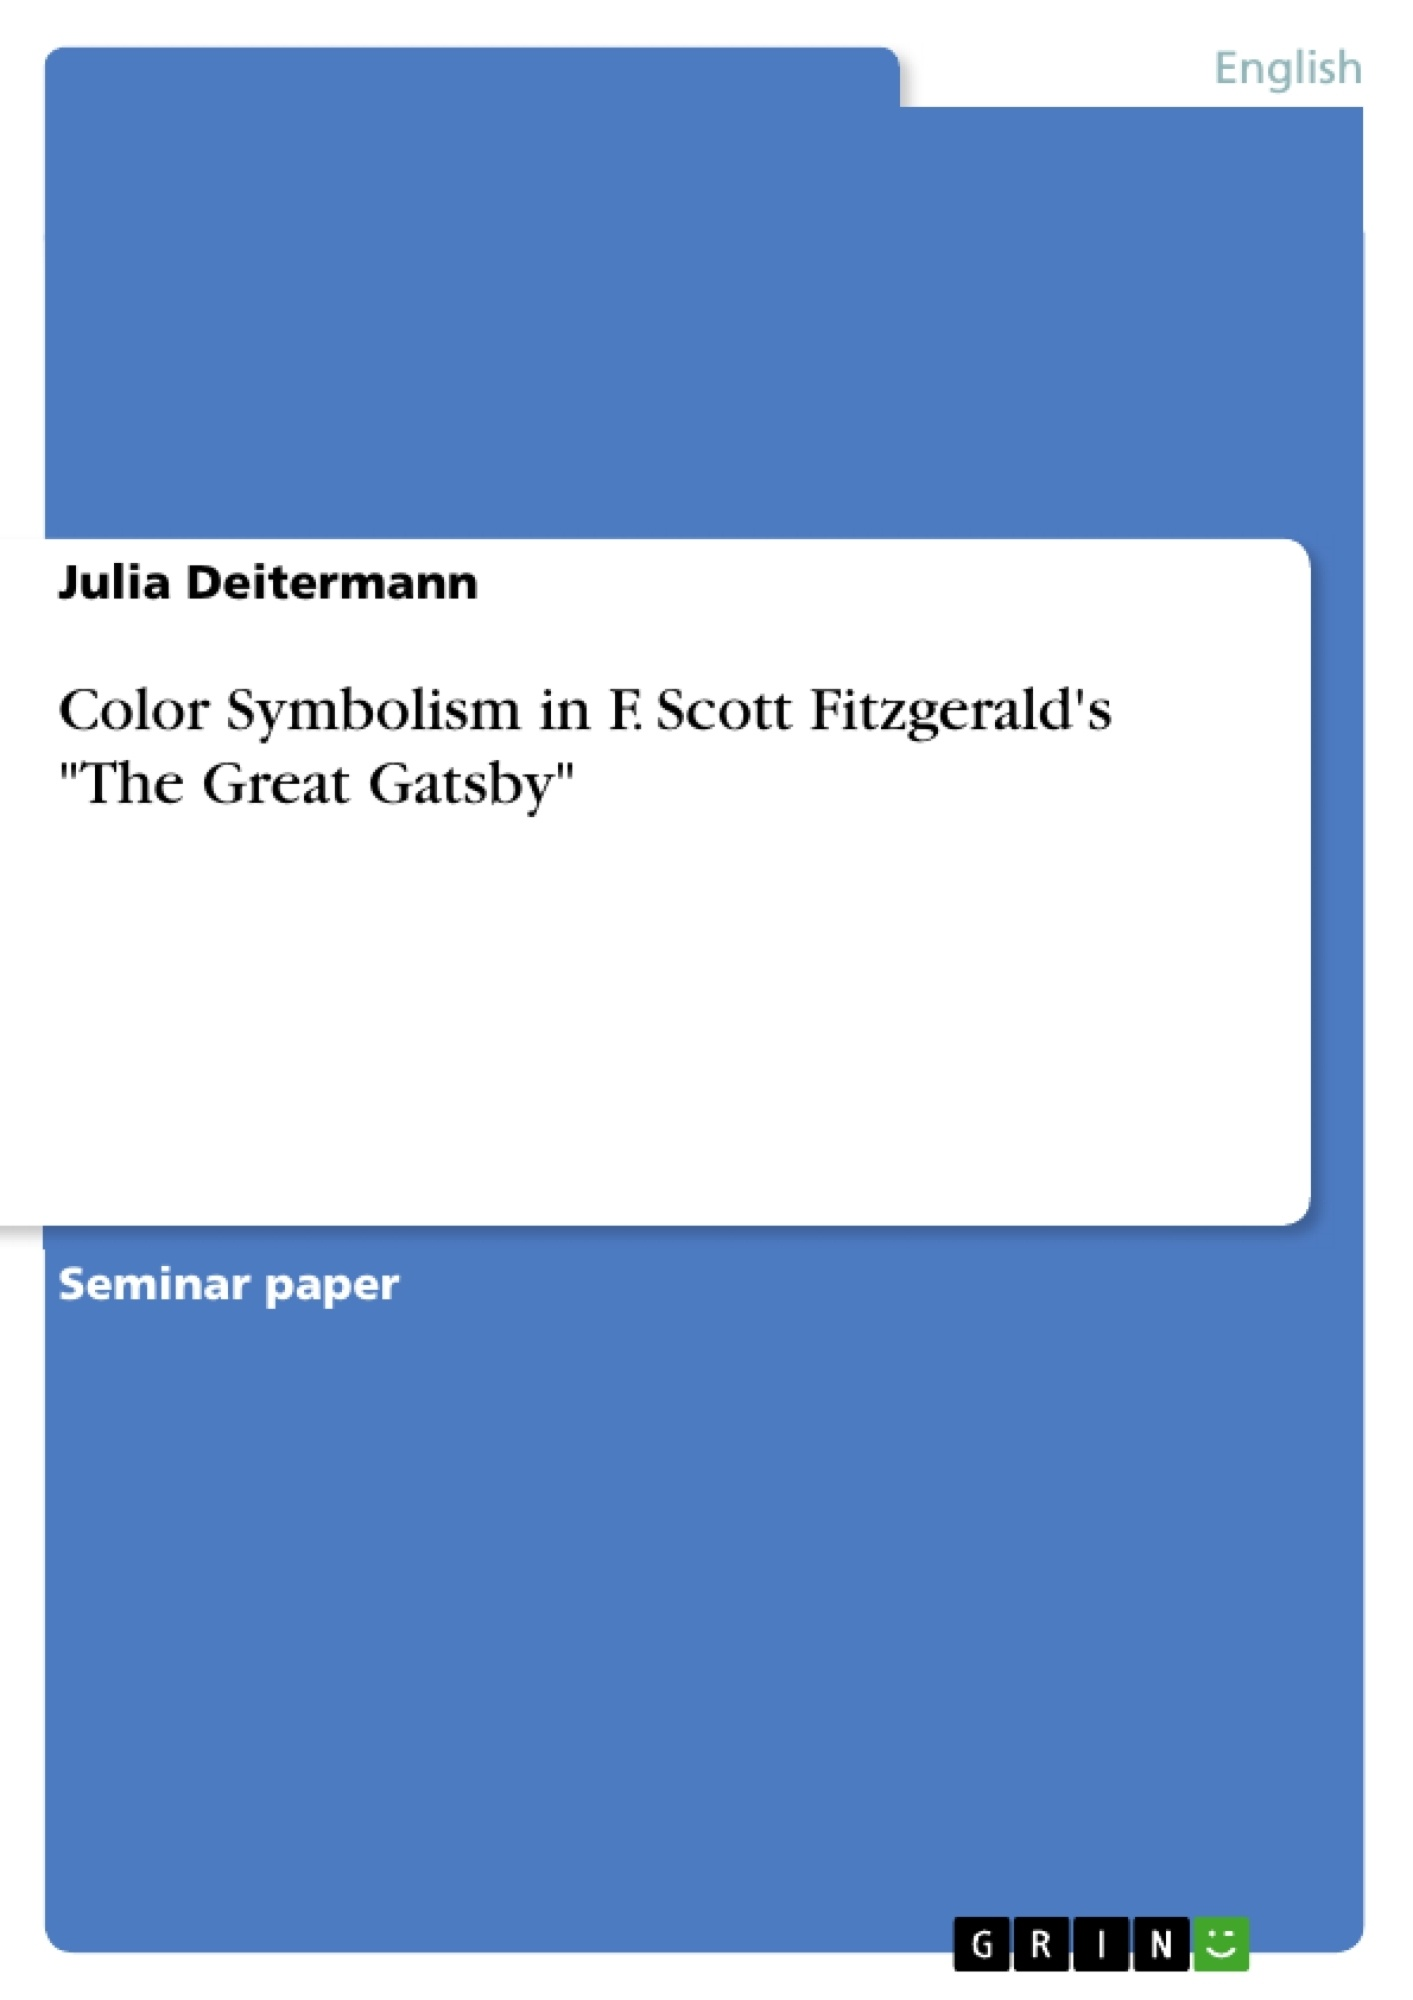 color symbolism in f scott fitzgerald s the great gatsby upload your own papers earn money and win an iphone 7